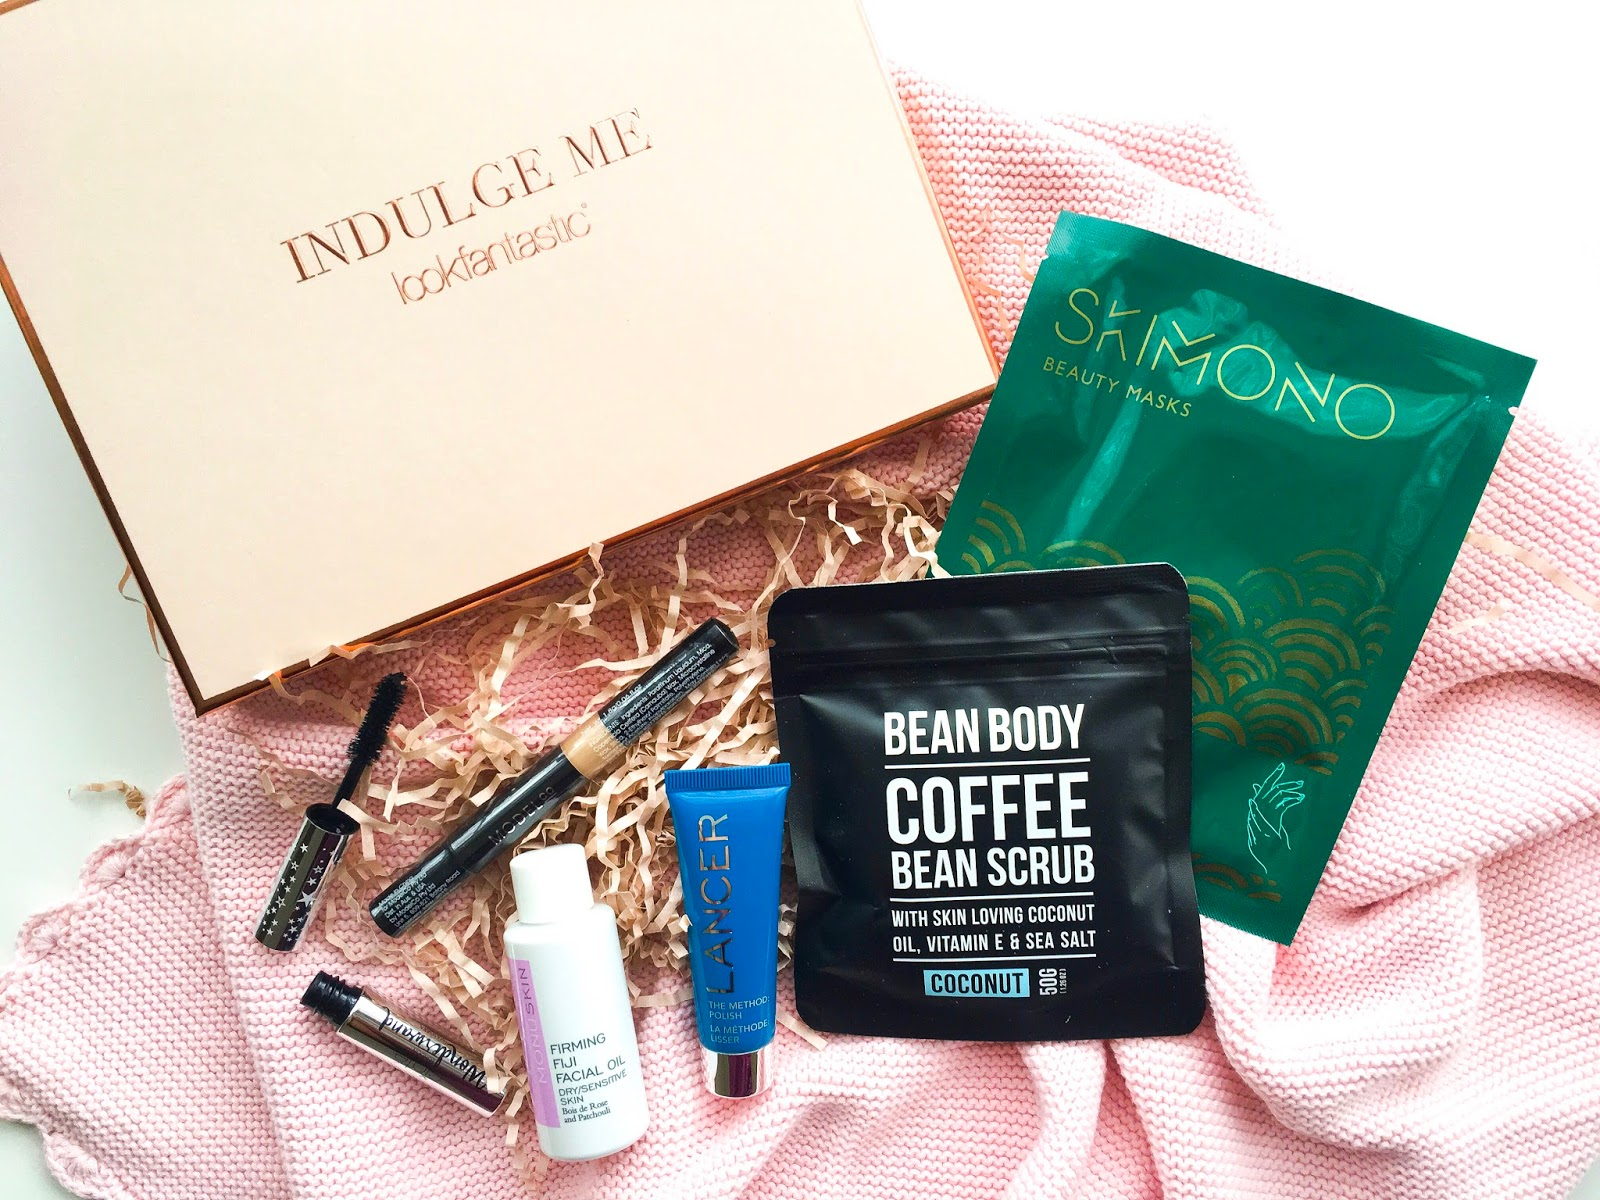 Look Fantastic Beauty Box indulge me edit review